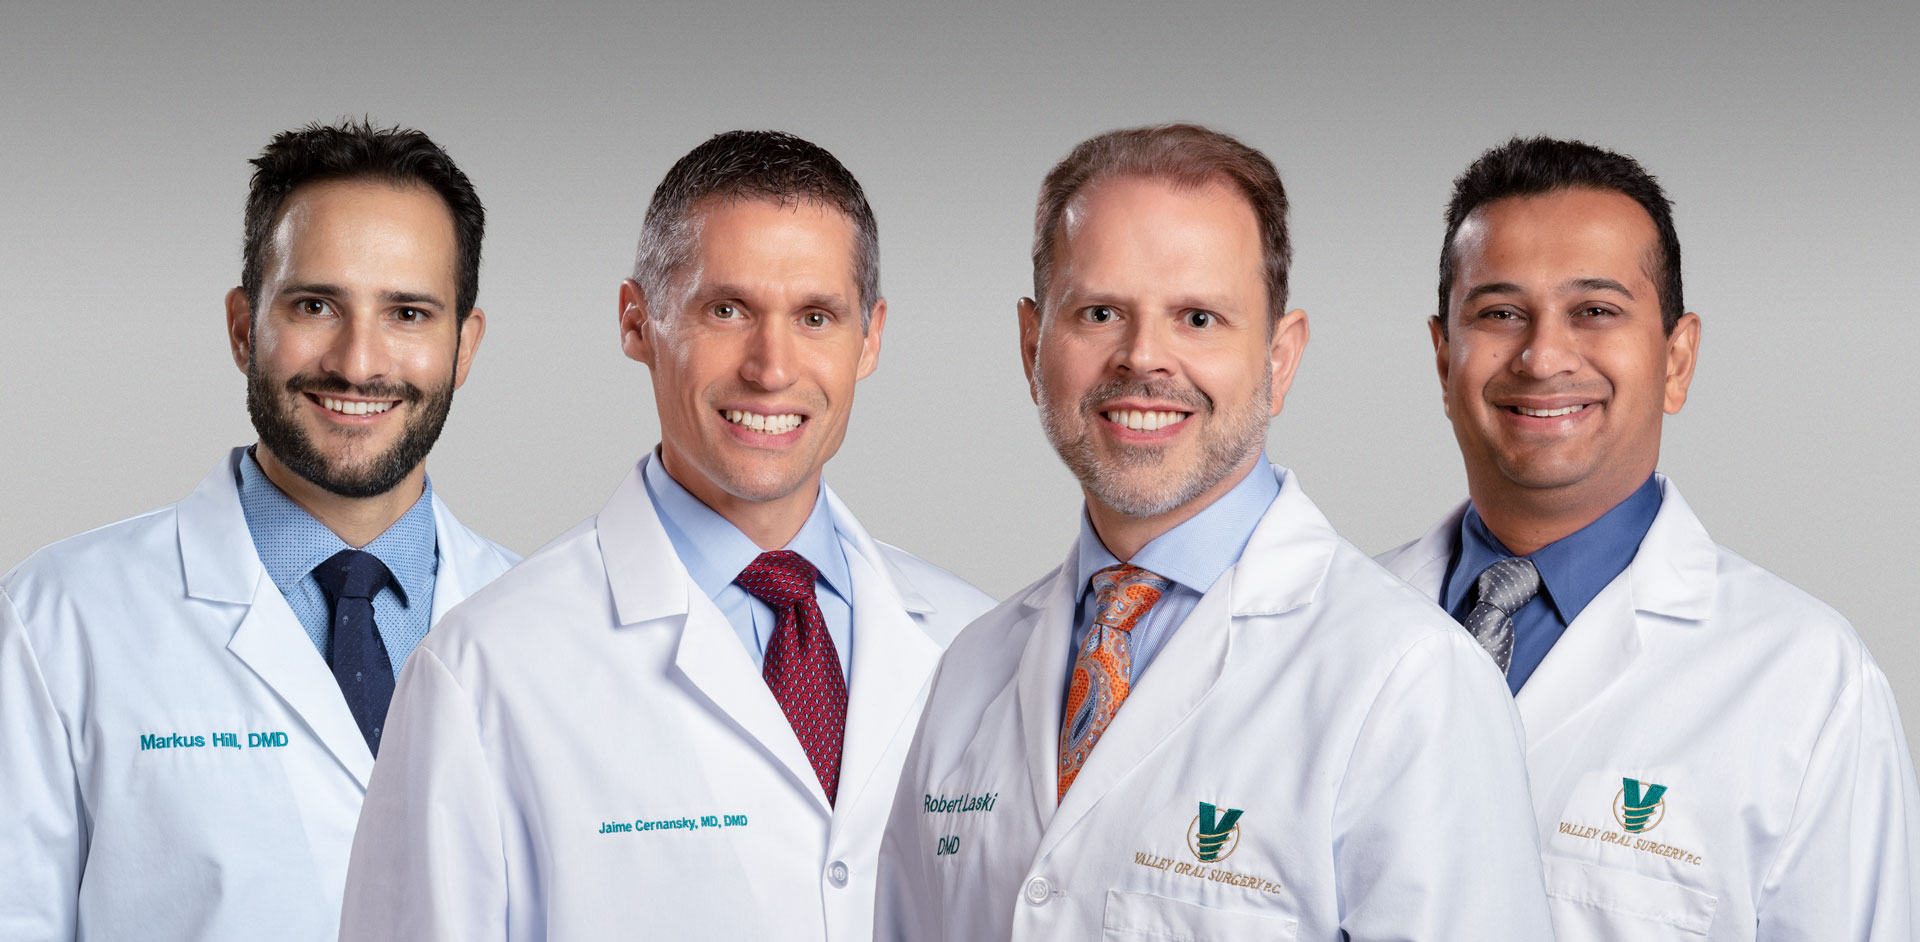 The surgeons of Valley Oral Surgery